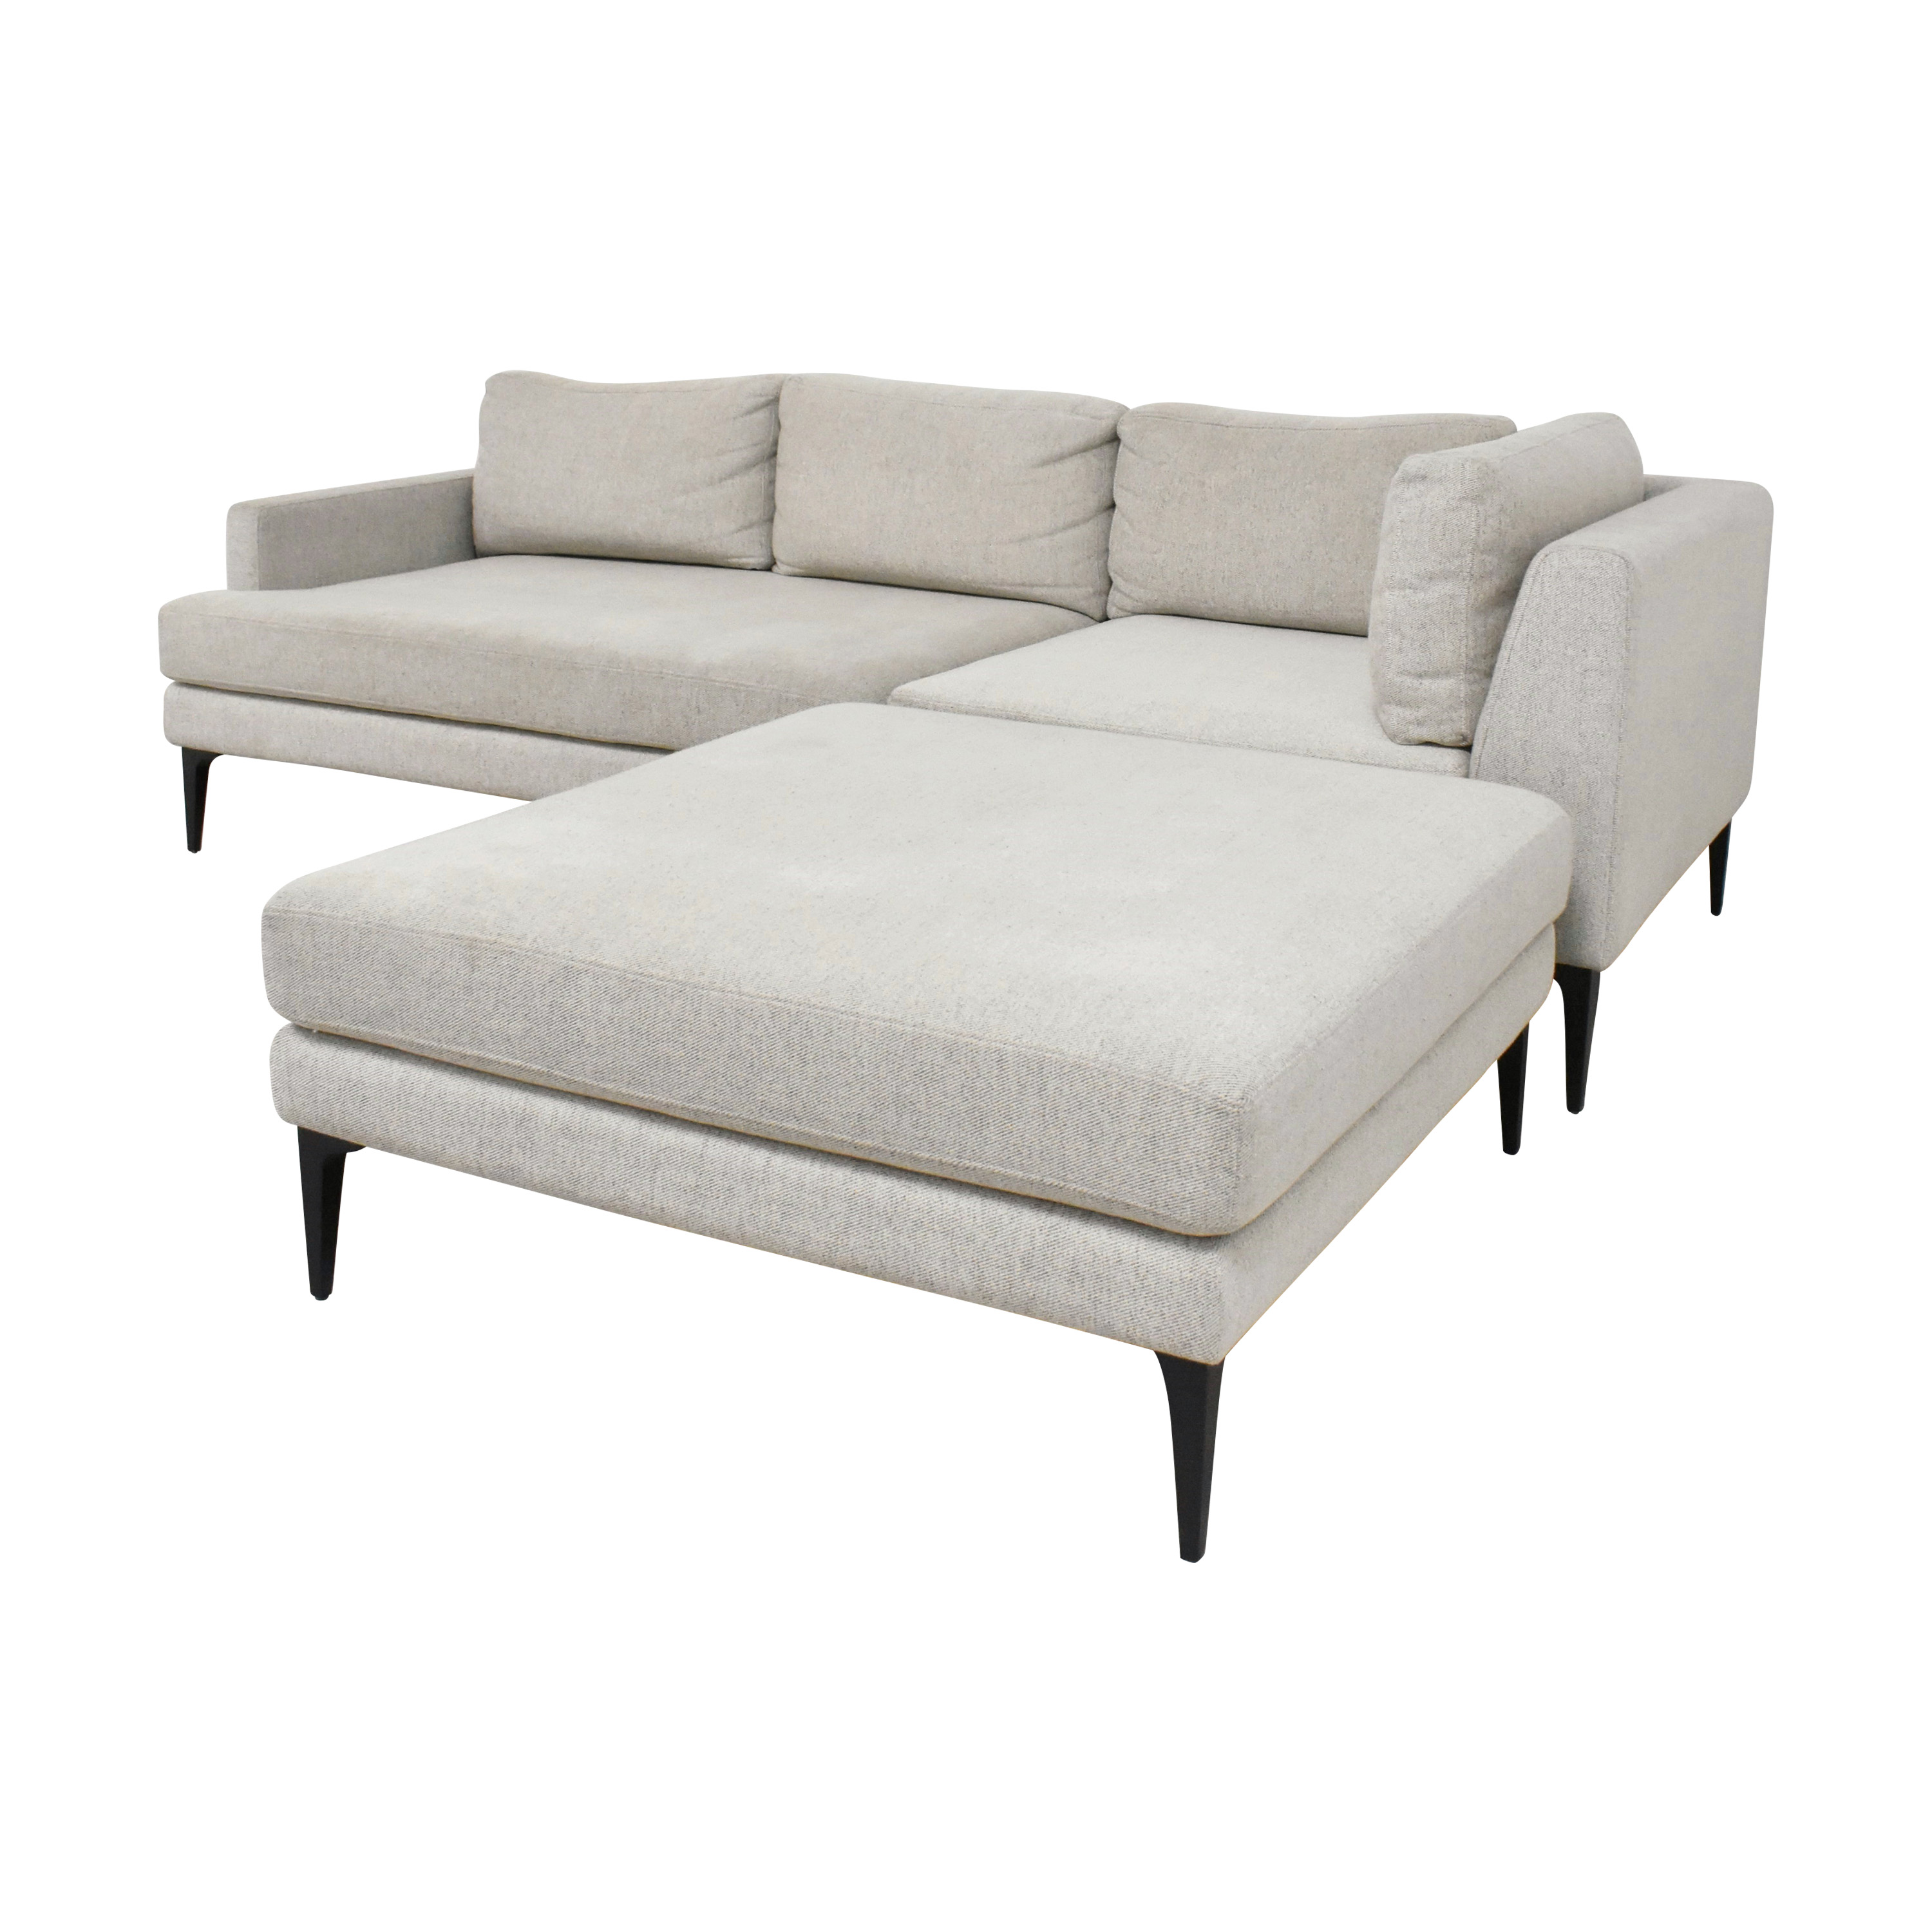 West Elm West Elm Andes Three Piece Chaise Sectional Sofa second hand